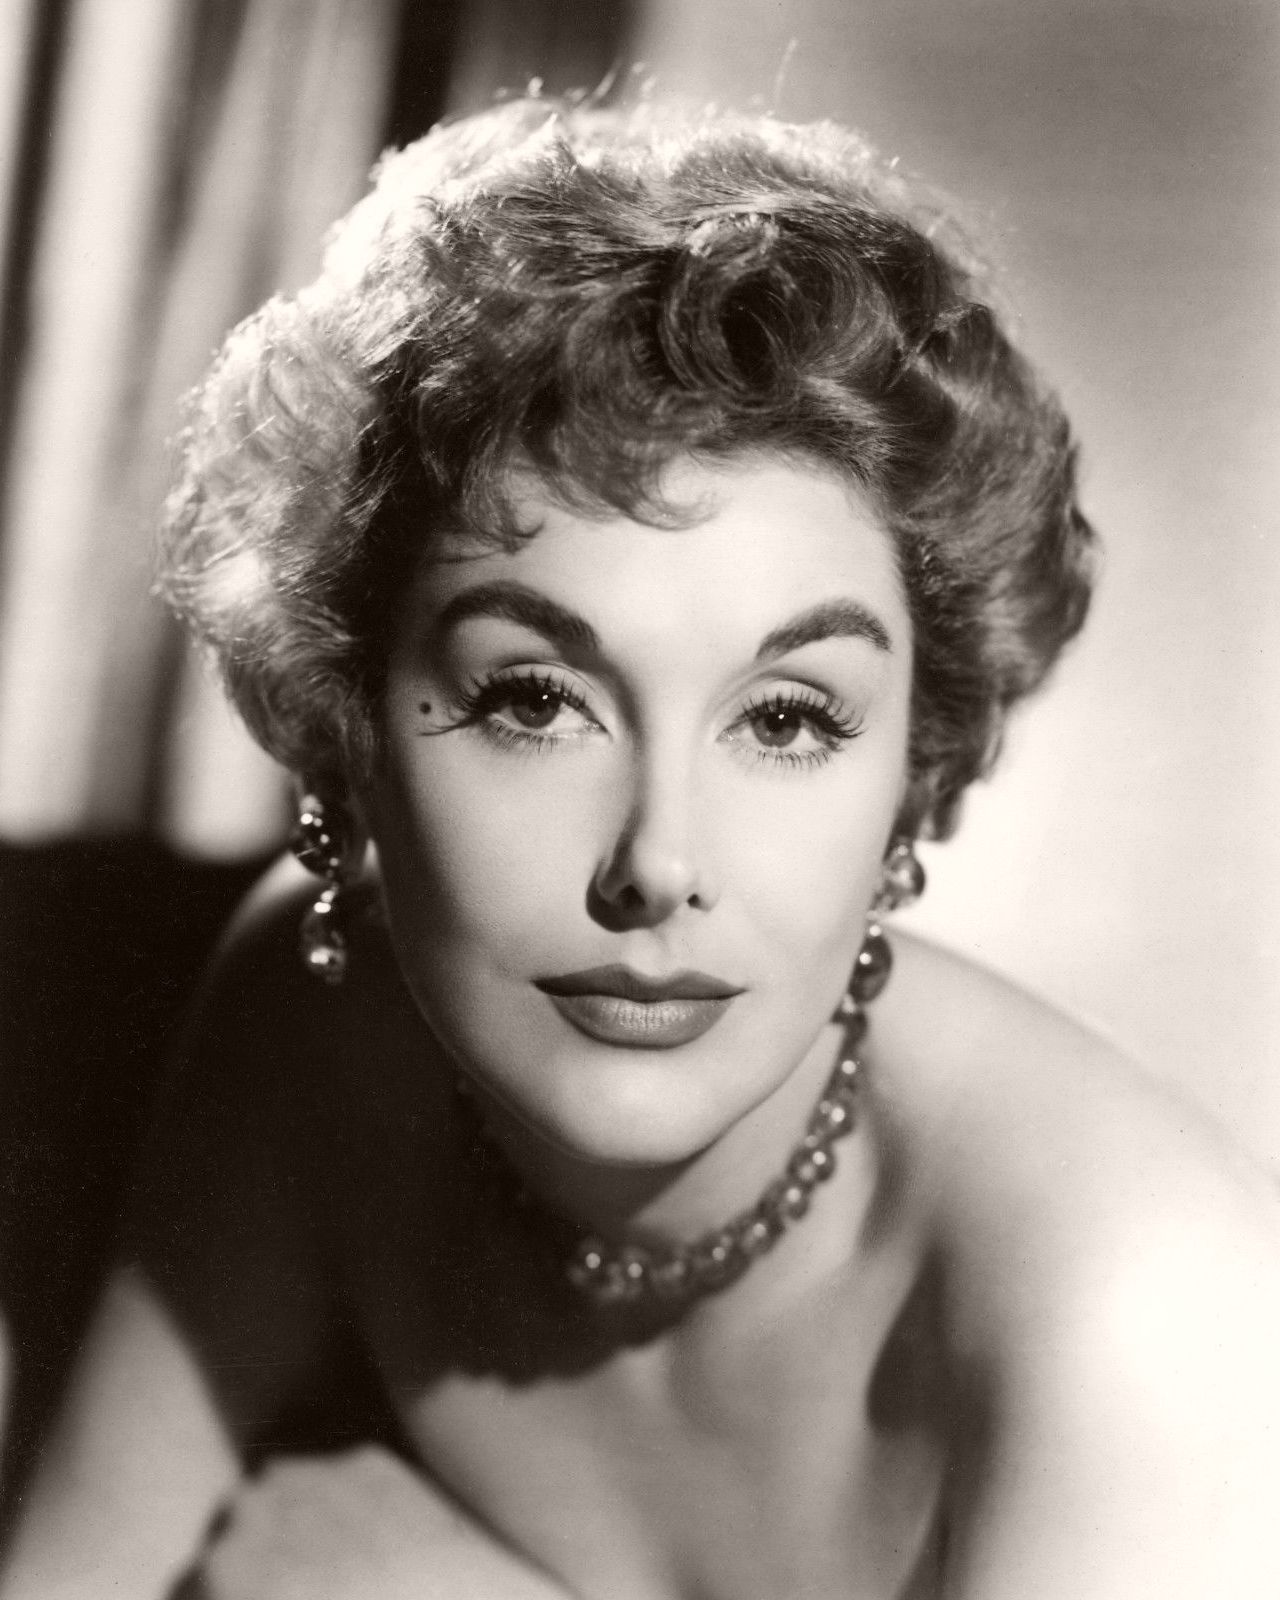 British actress Kay Kendall poses for a 1950s glamour photo